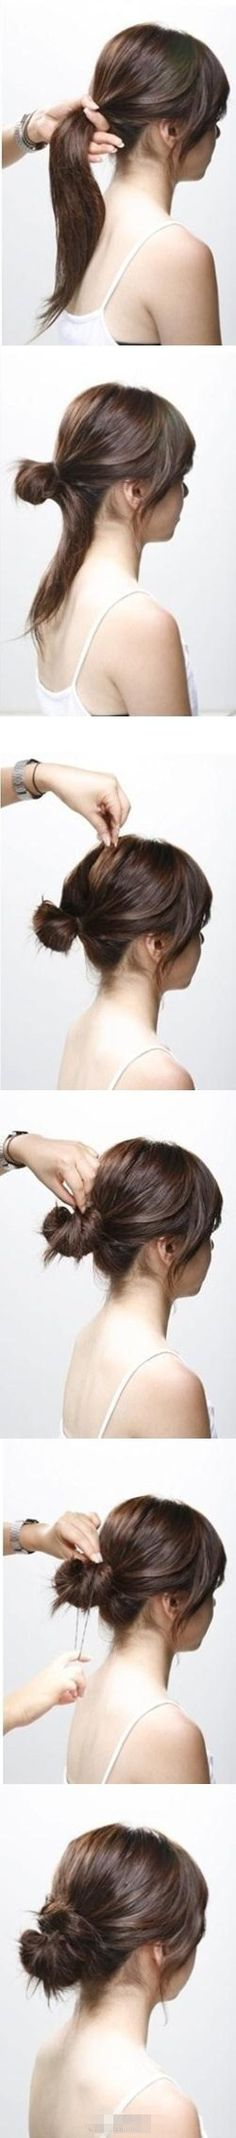 Good messy bun tutorial. -- I already do this, but thought I'd share for those that want to do it too! Super cute, quick and easy!